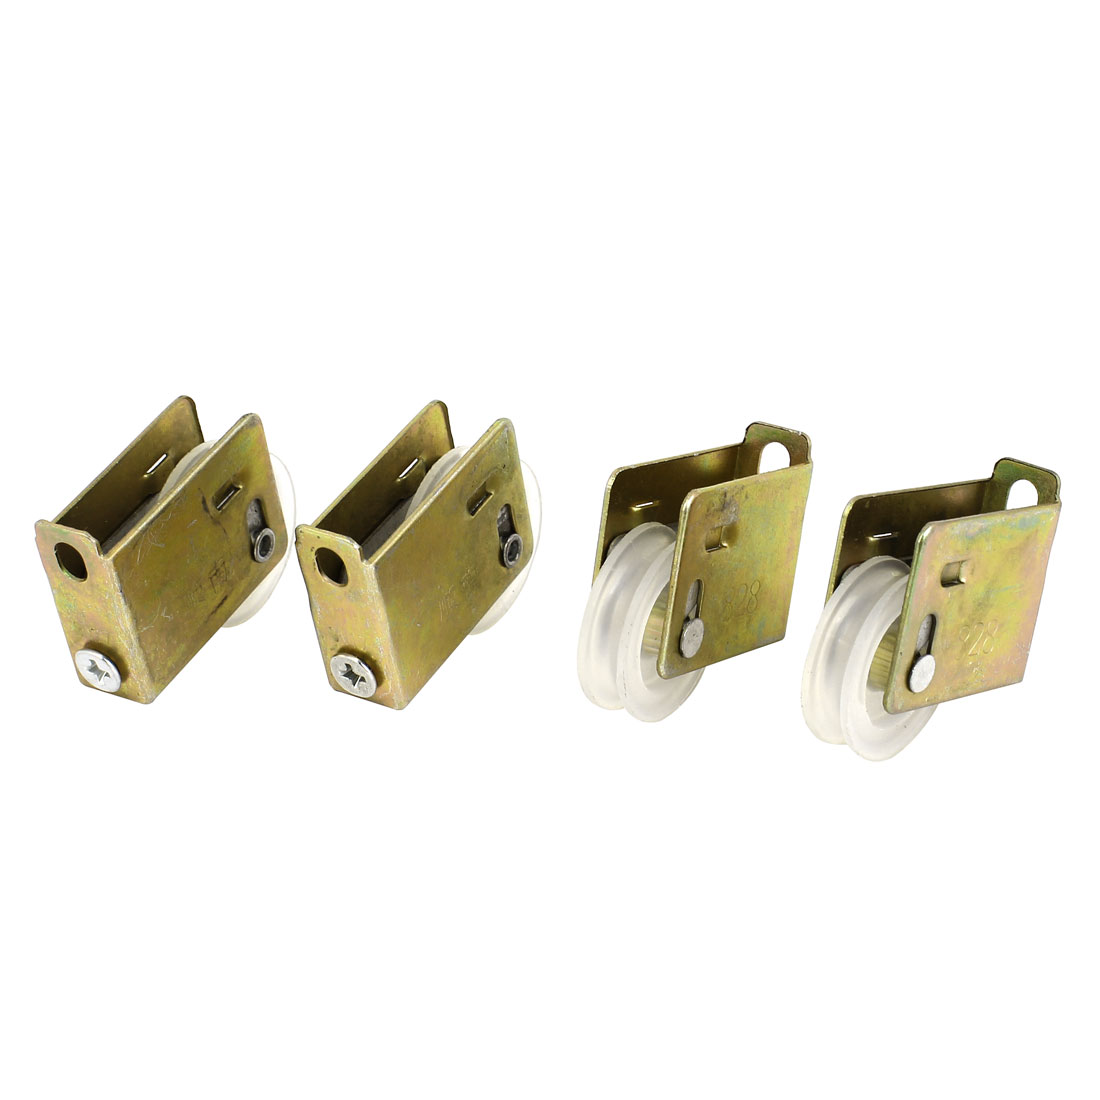 26mm Dia. Wheel 828 Single Roller Door Window Sash Pulley White 4Pcs Brass Tone